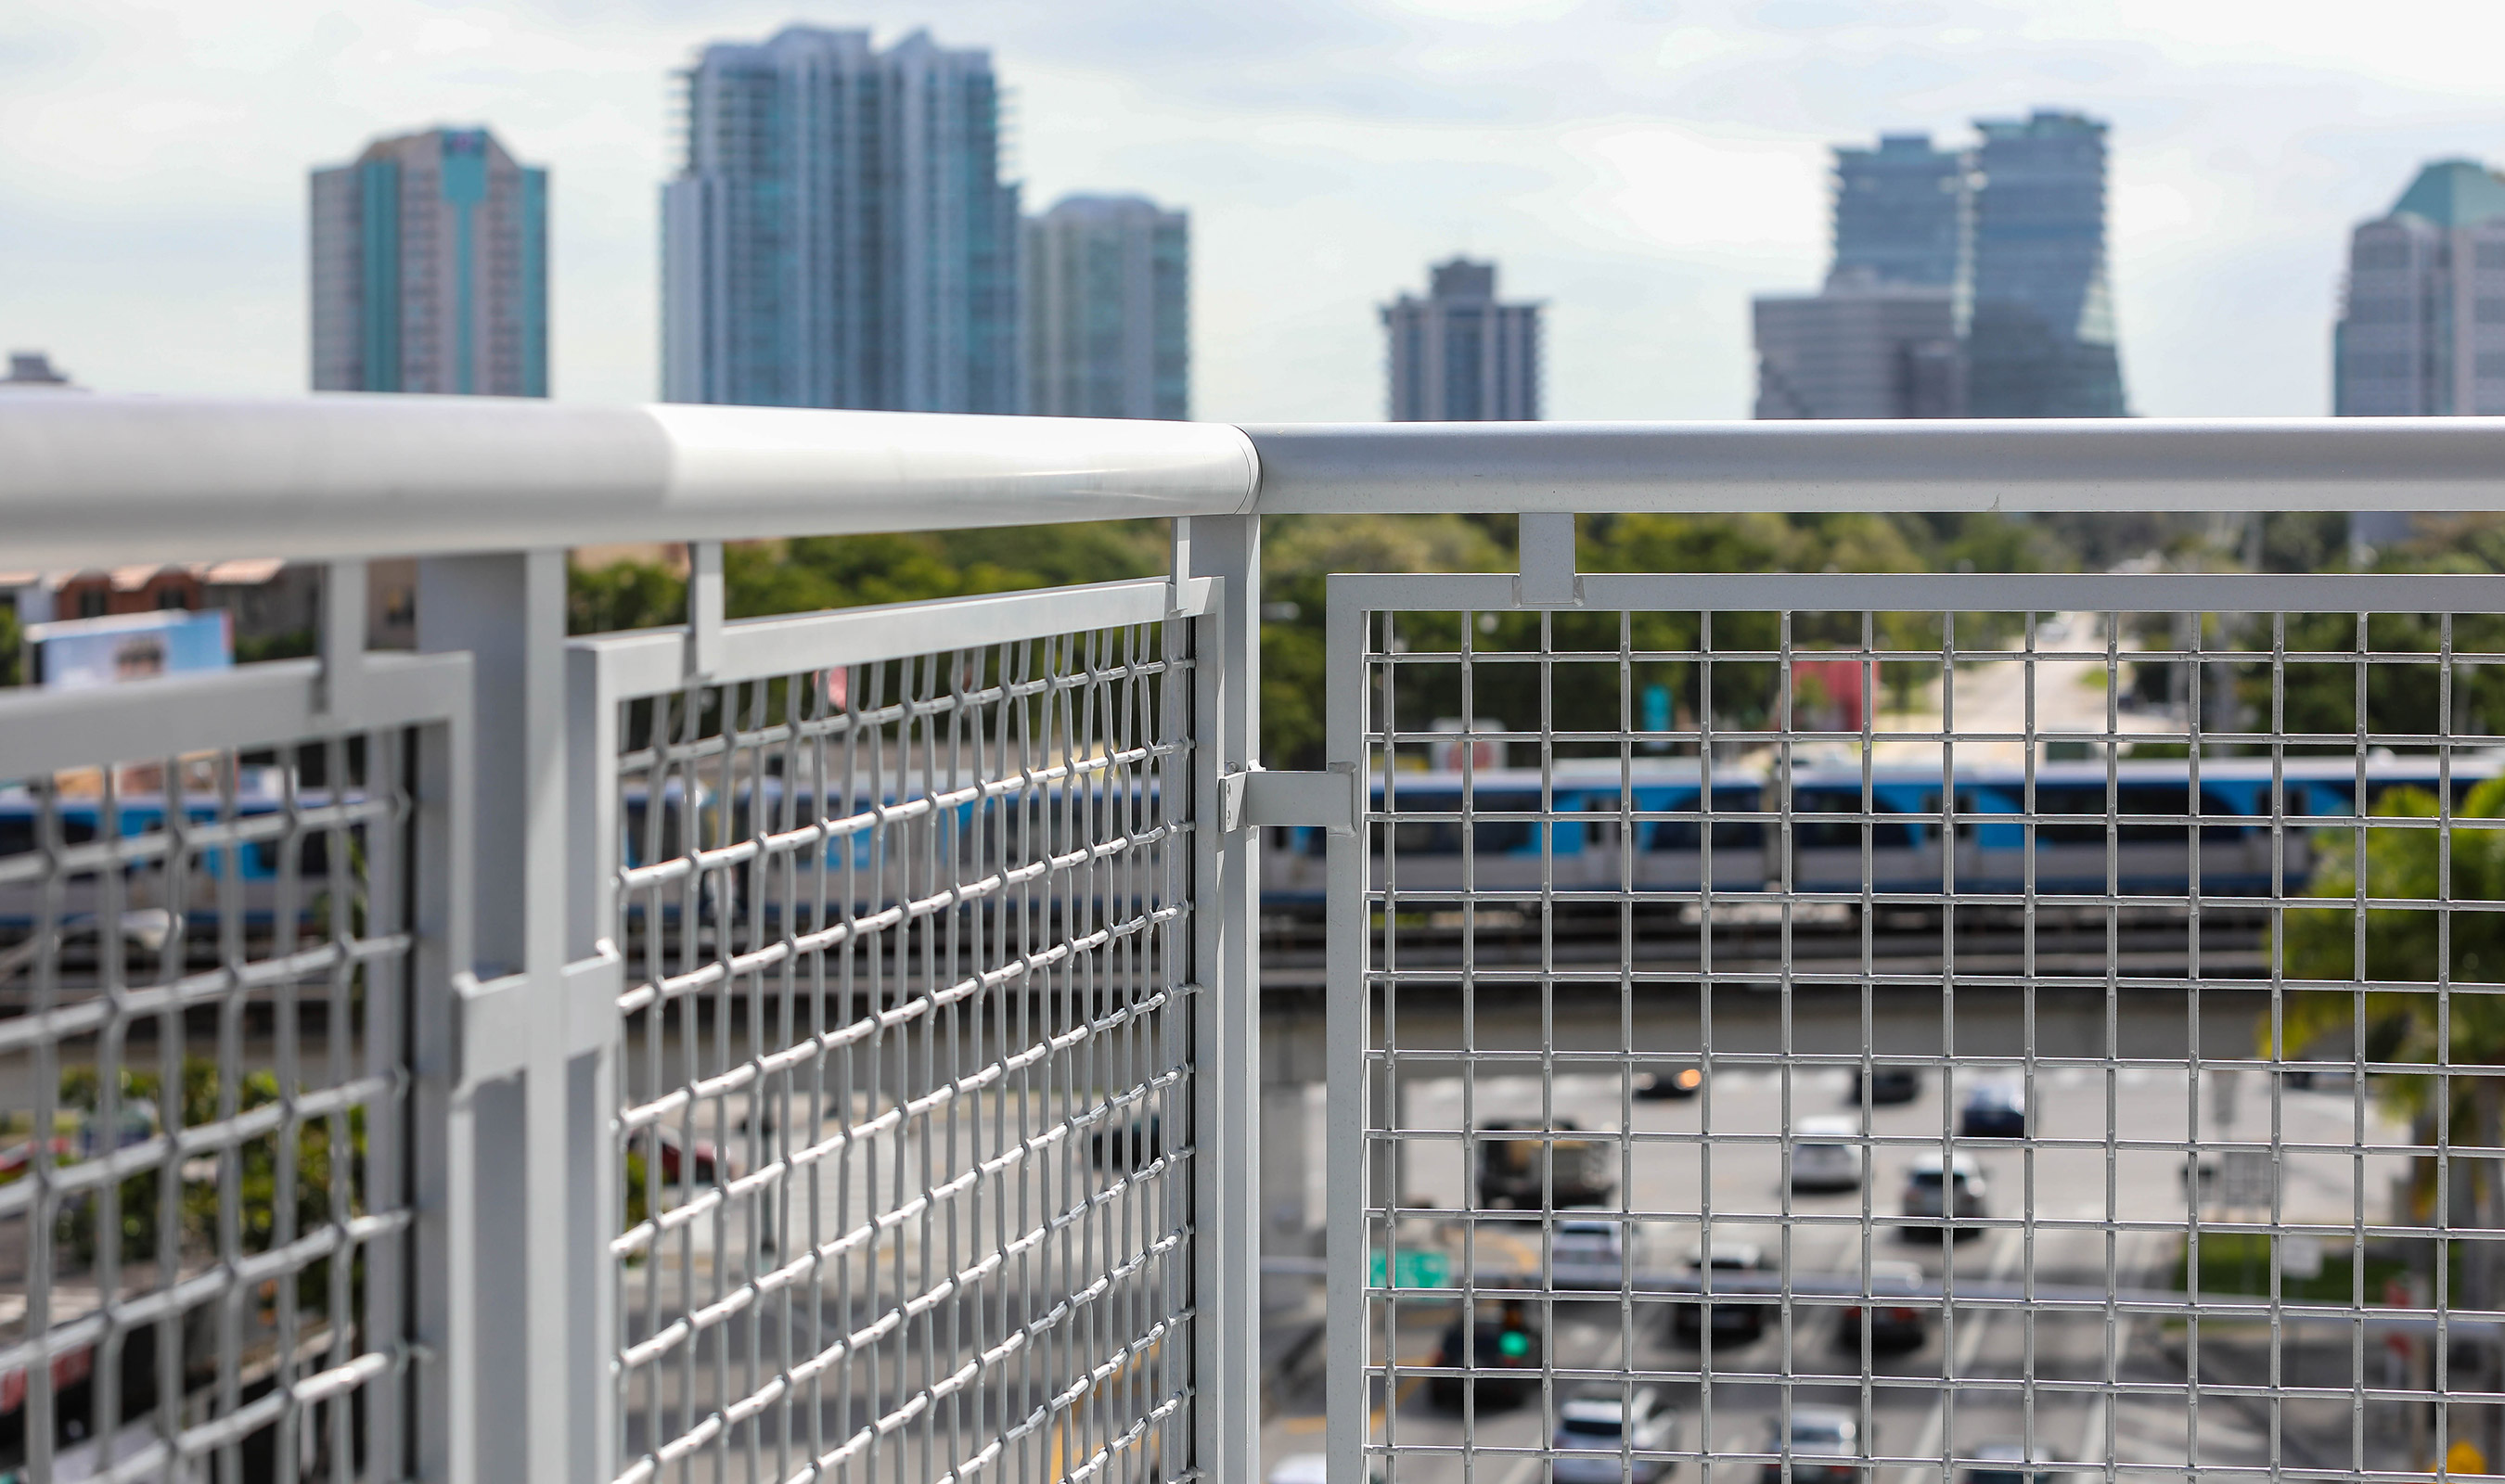 Banker Wire's L-64 woven wire mesh in powder coated aluminum is a perfect combination for dealing with the Florida coastline's corrosive nature.